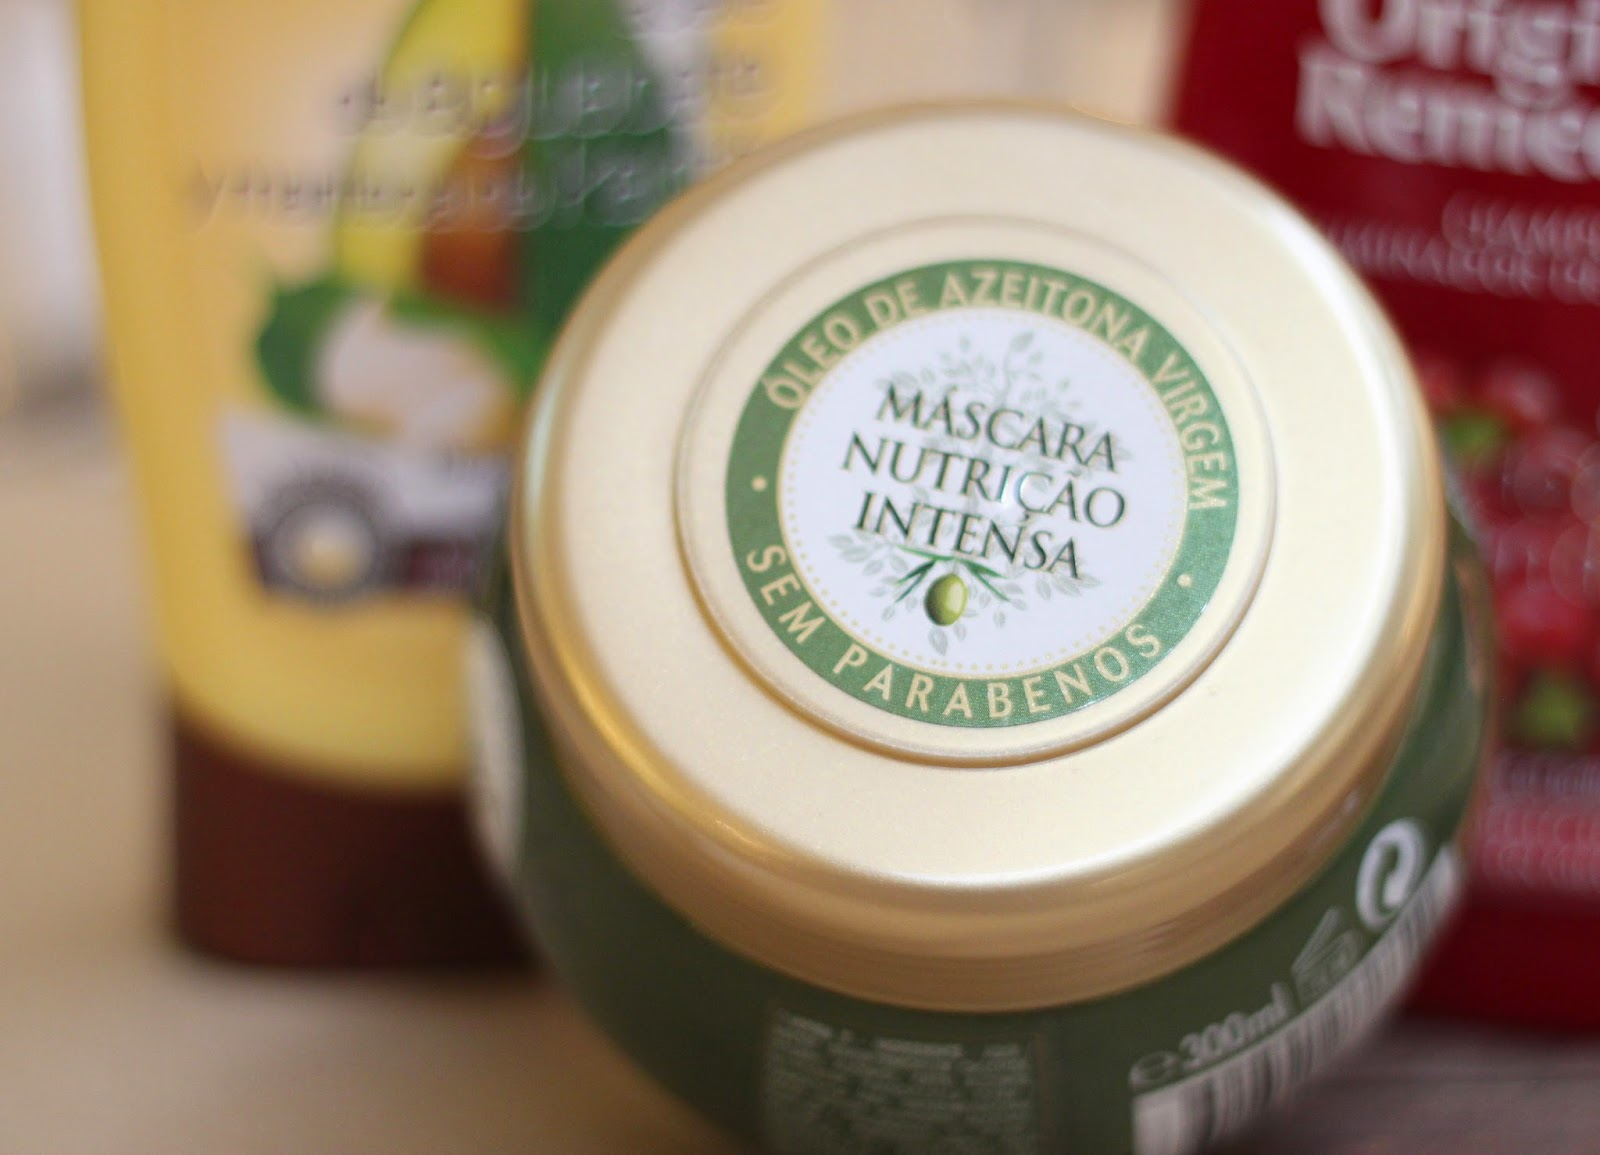 photo-garnier-original_remedies-oliva_mitica-mascarilla